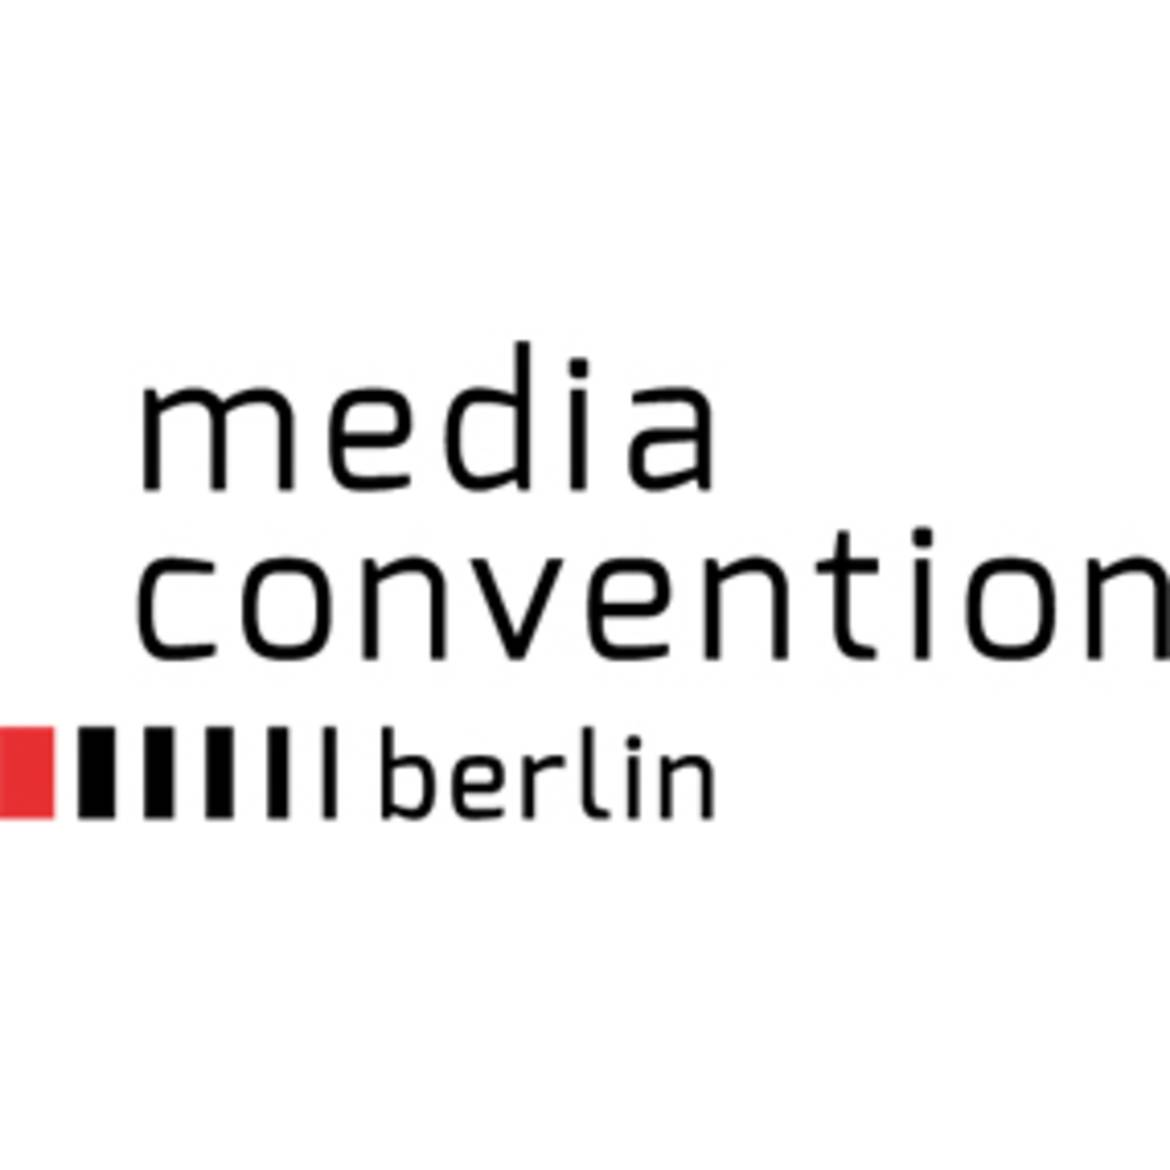 mediaconncention_01